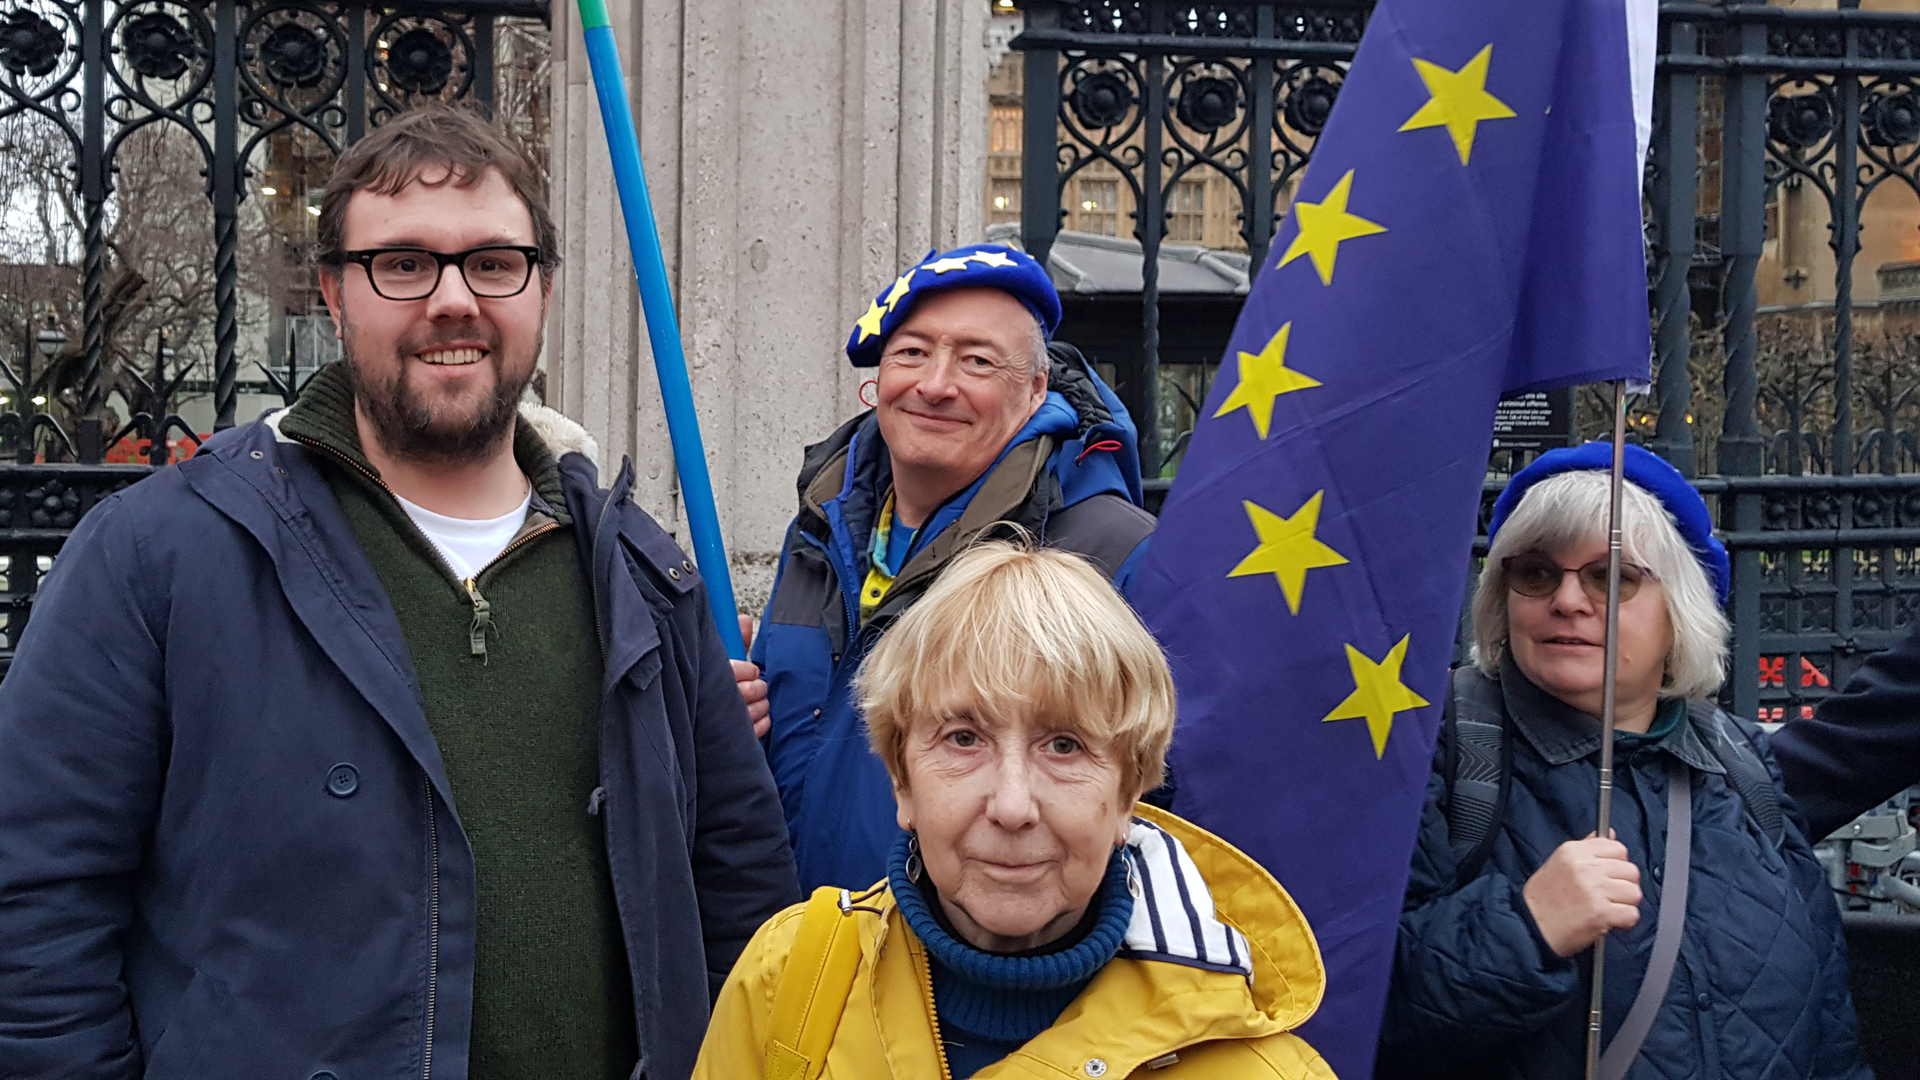 Lib Dem / Norfolk for Europe people at Westminster